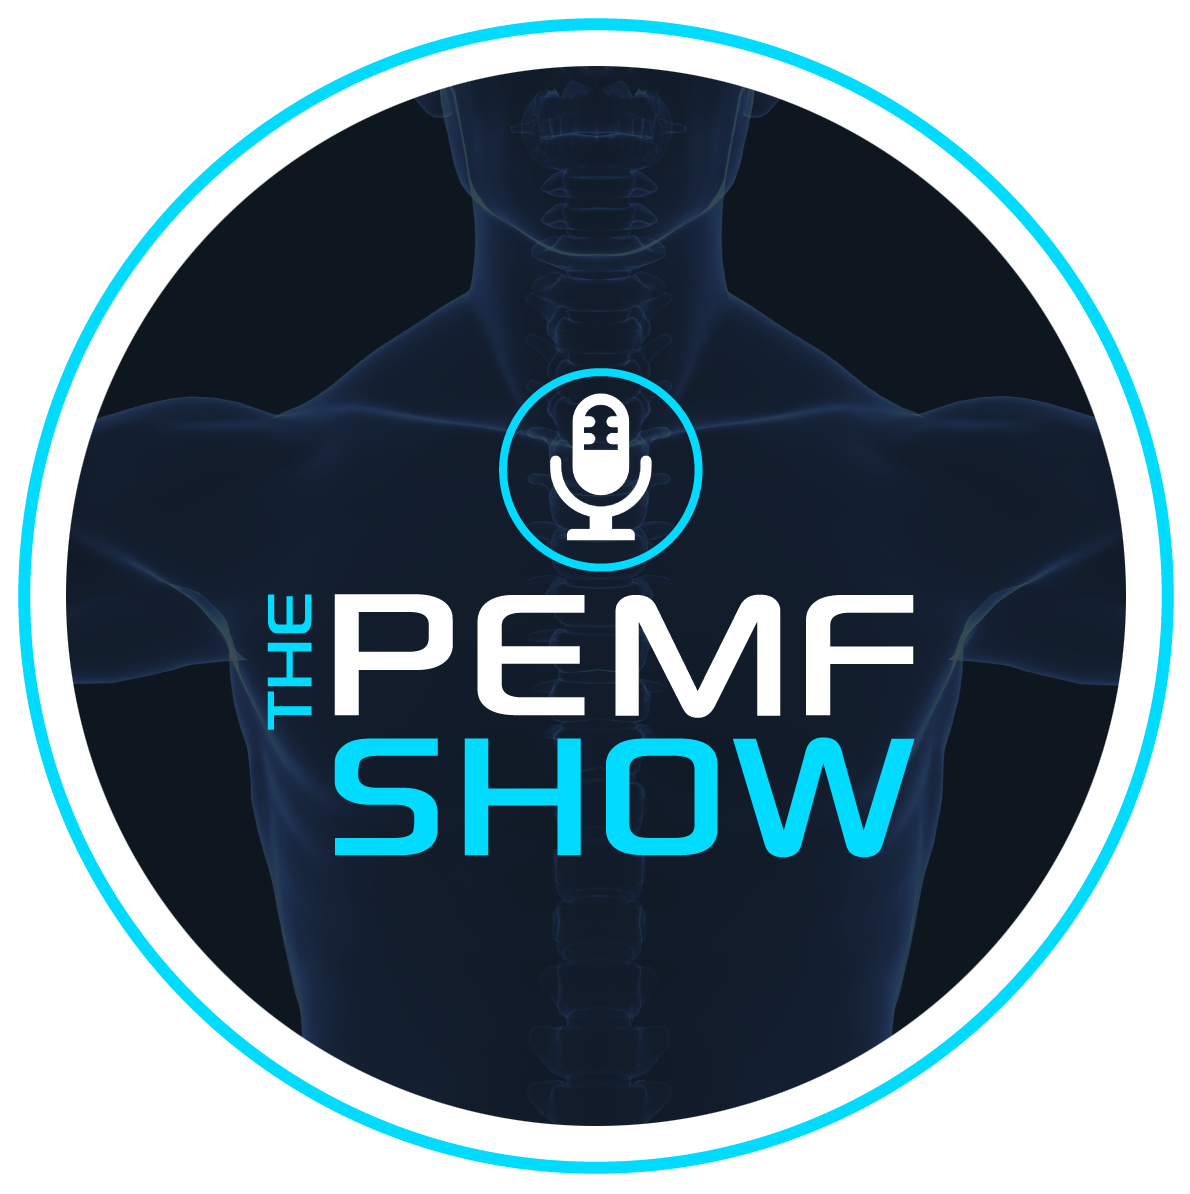 The PEMF SHOW | Episode 1 | How PEMF Works – The PEMF SHOW